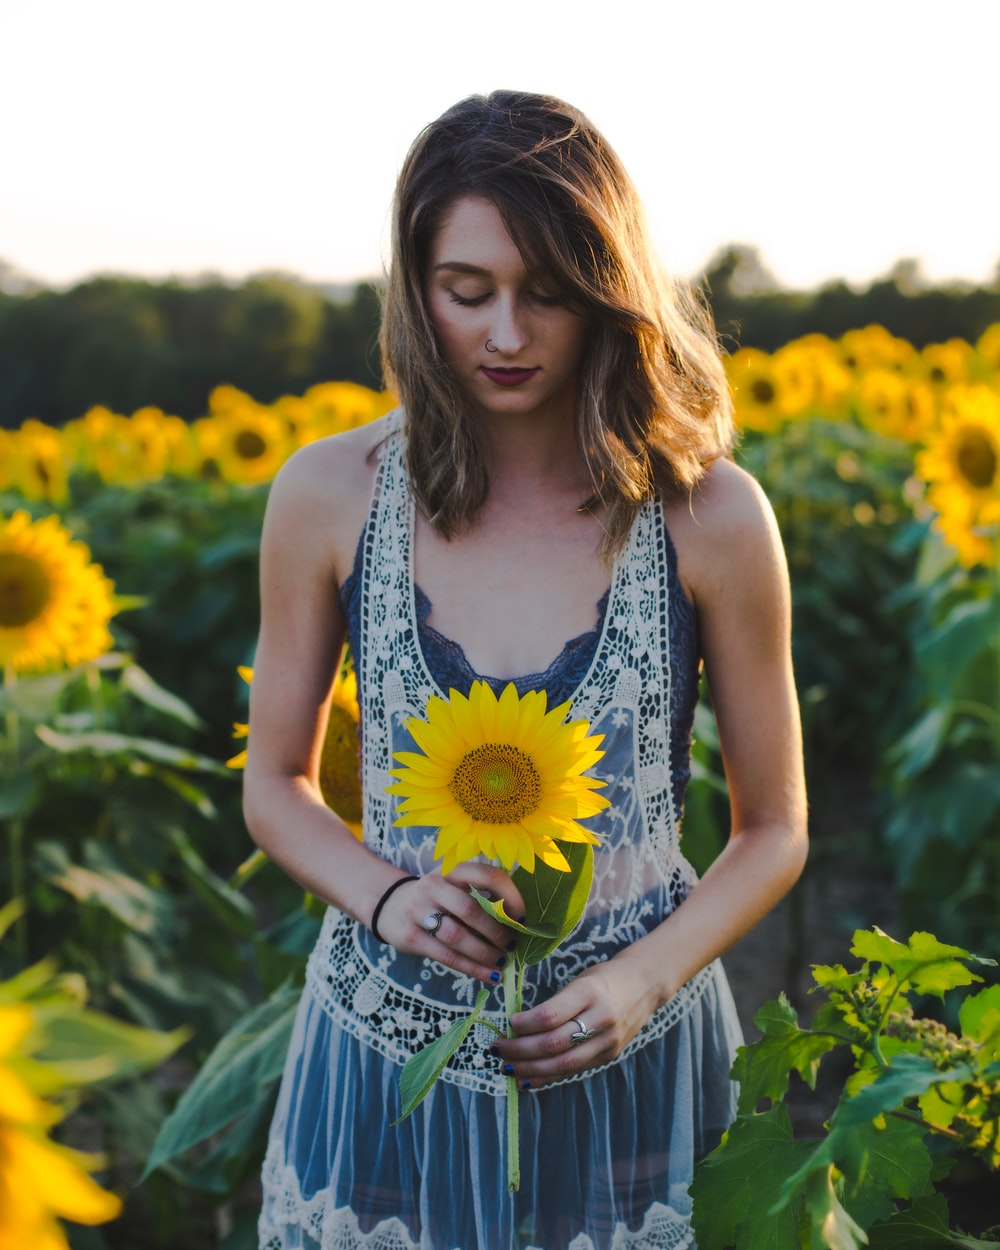 woman standing at sunflower field